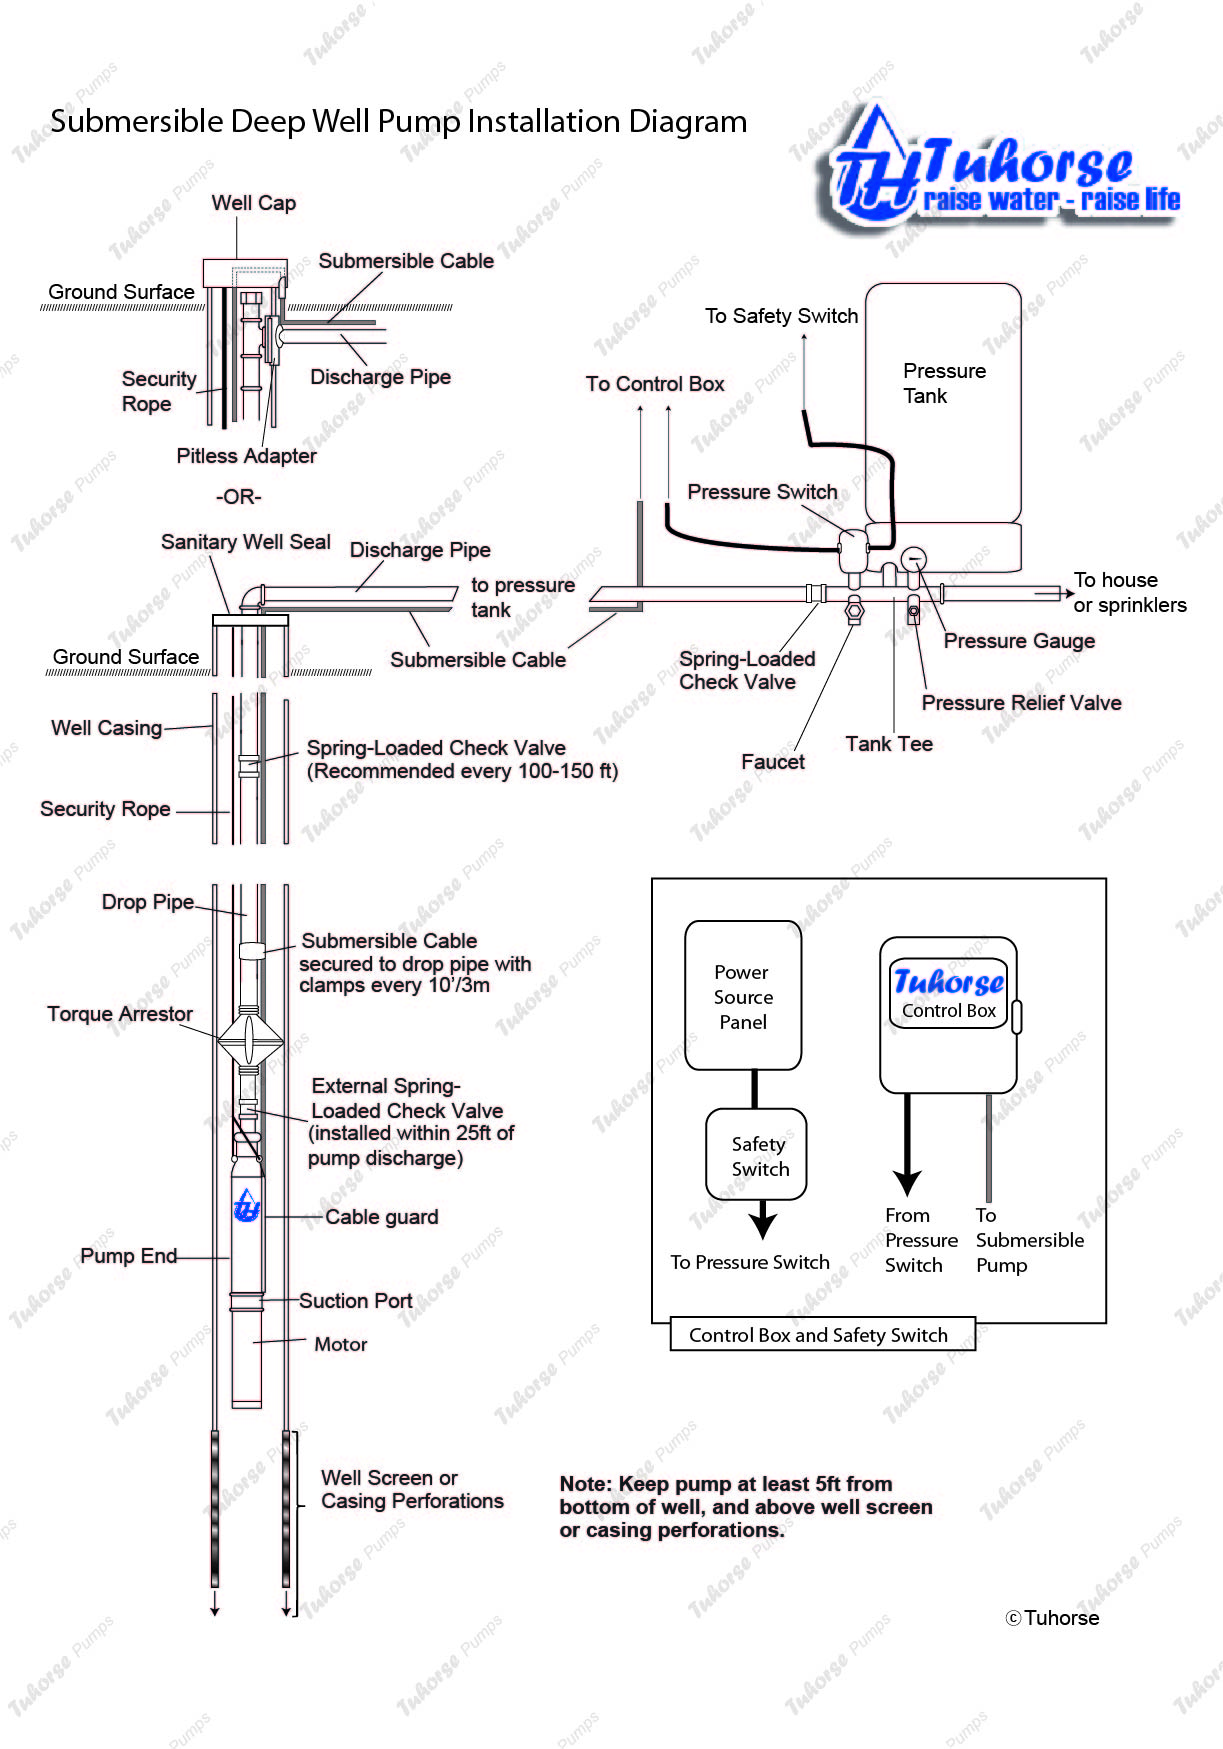 Submersible well pump installation diagram - General installation featuring well casing, well pump, torque arrestor, control box, pressure tank and switches